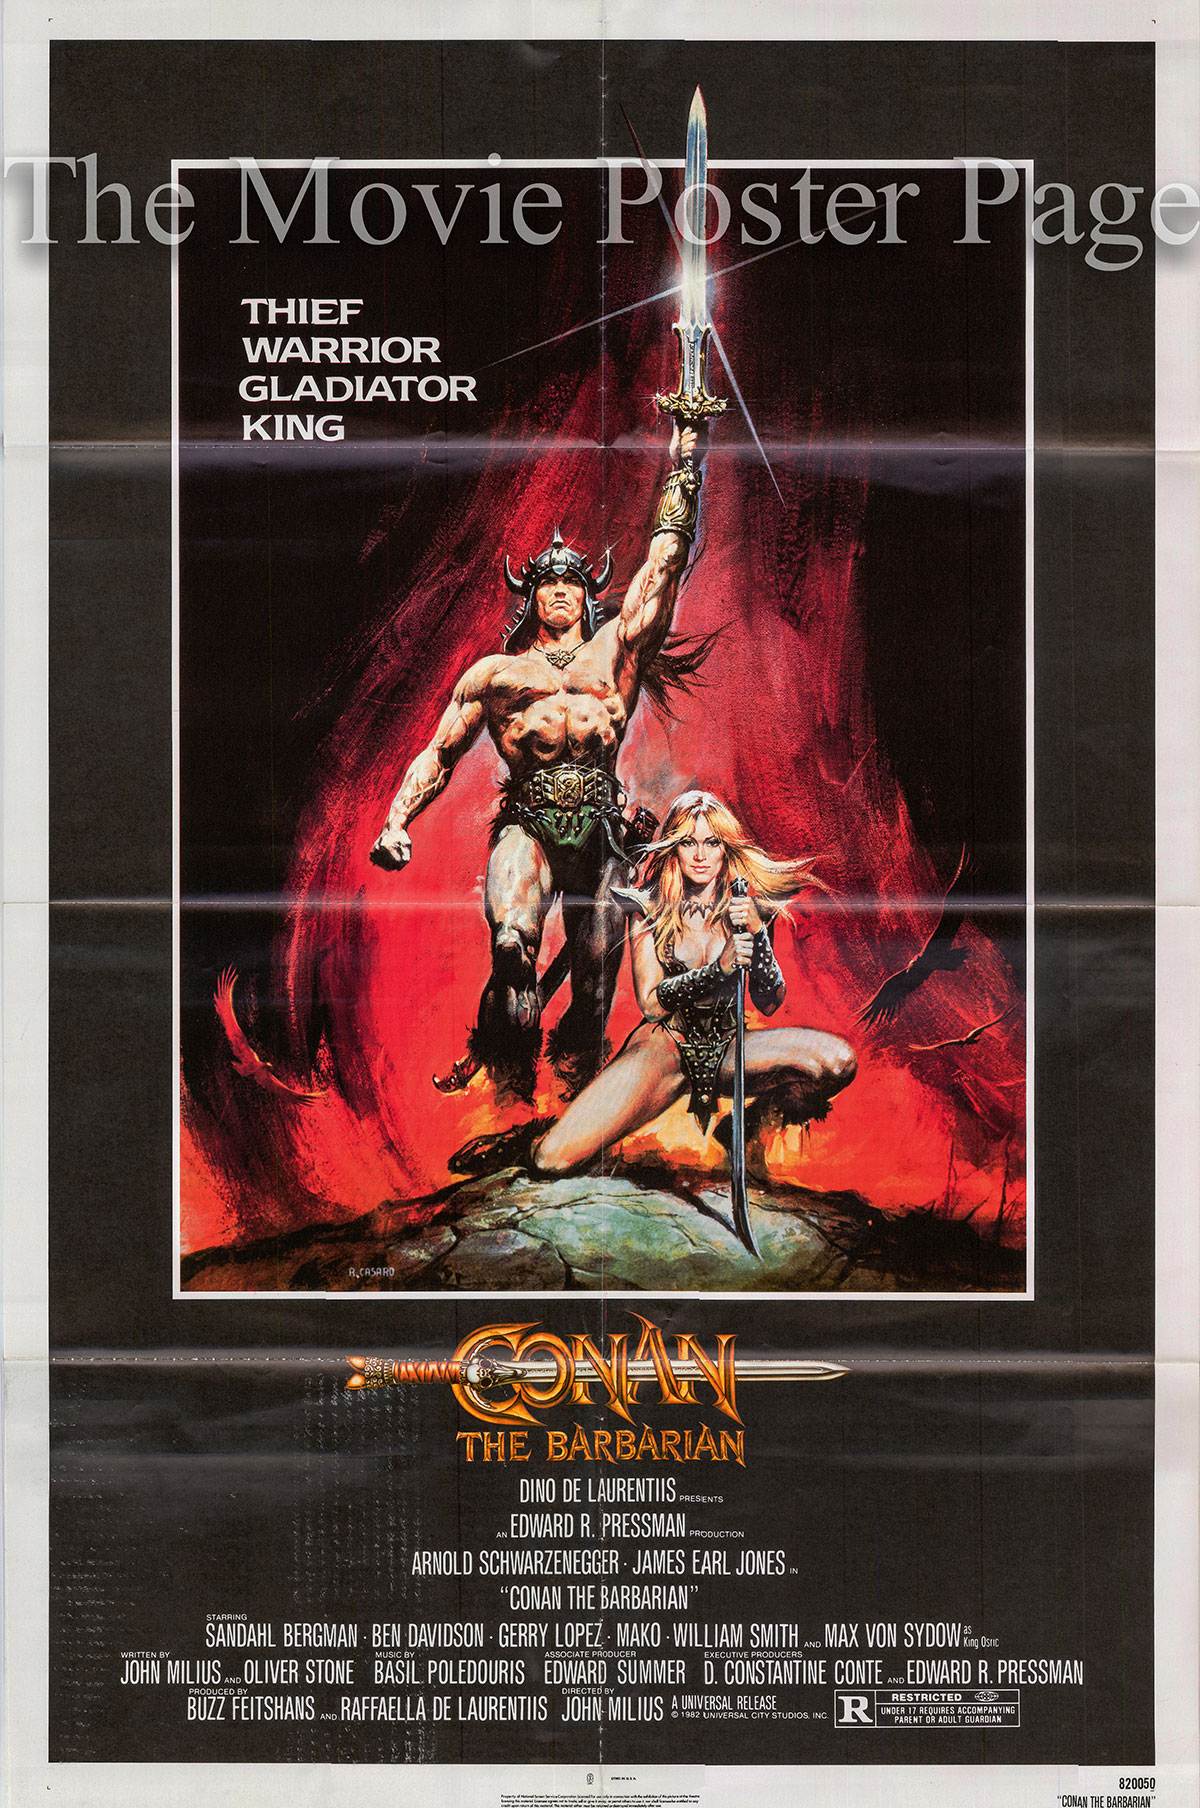 Pictured is a US one-sheet poster fot the 1982 John Milius film Conan the Barbarian starring Arnold Schwarzenegger.